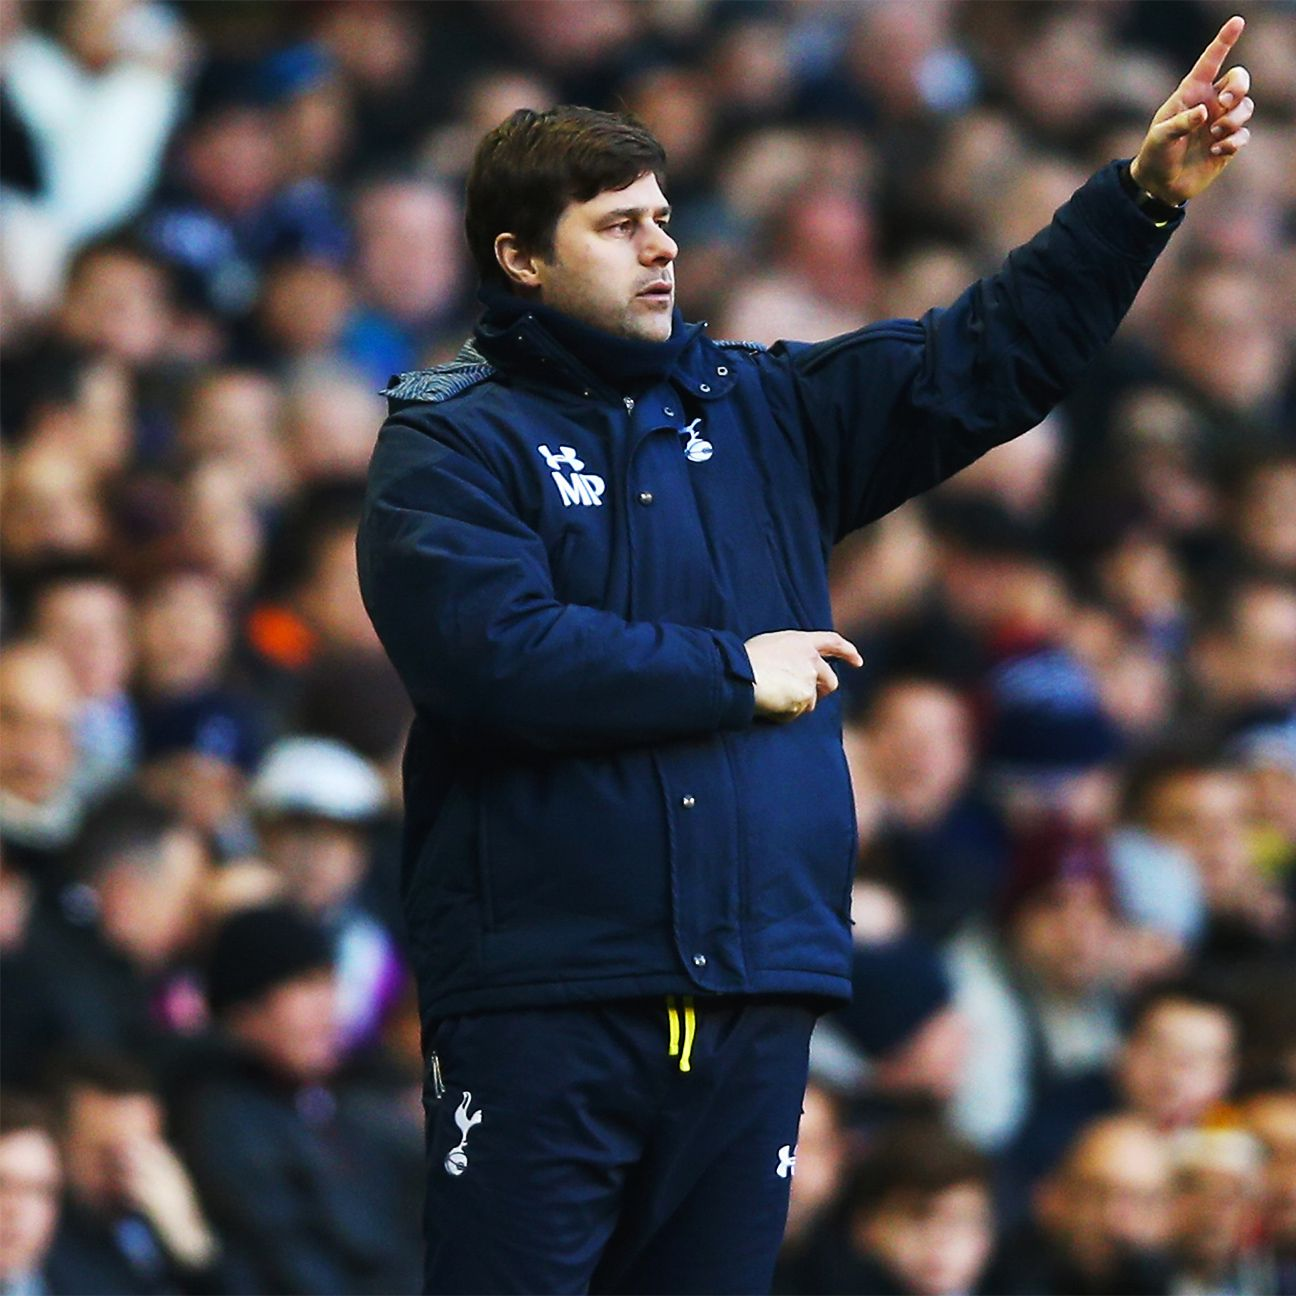 Tottenham boss Mauricio Pochettino has shied away from giving chances to fringe players in 2015-16.